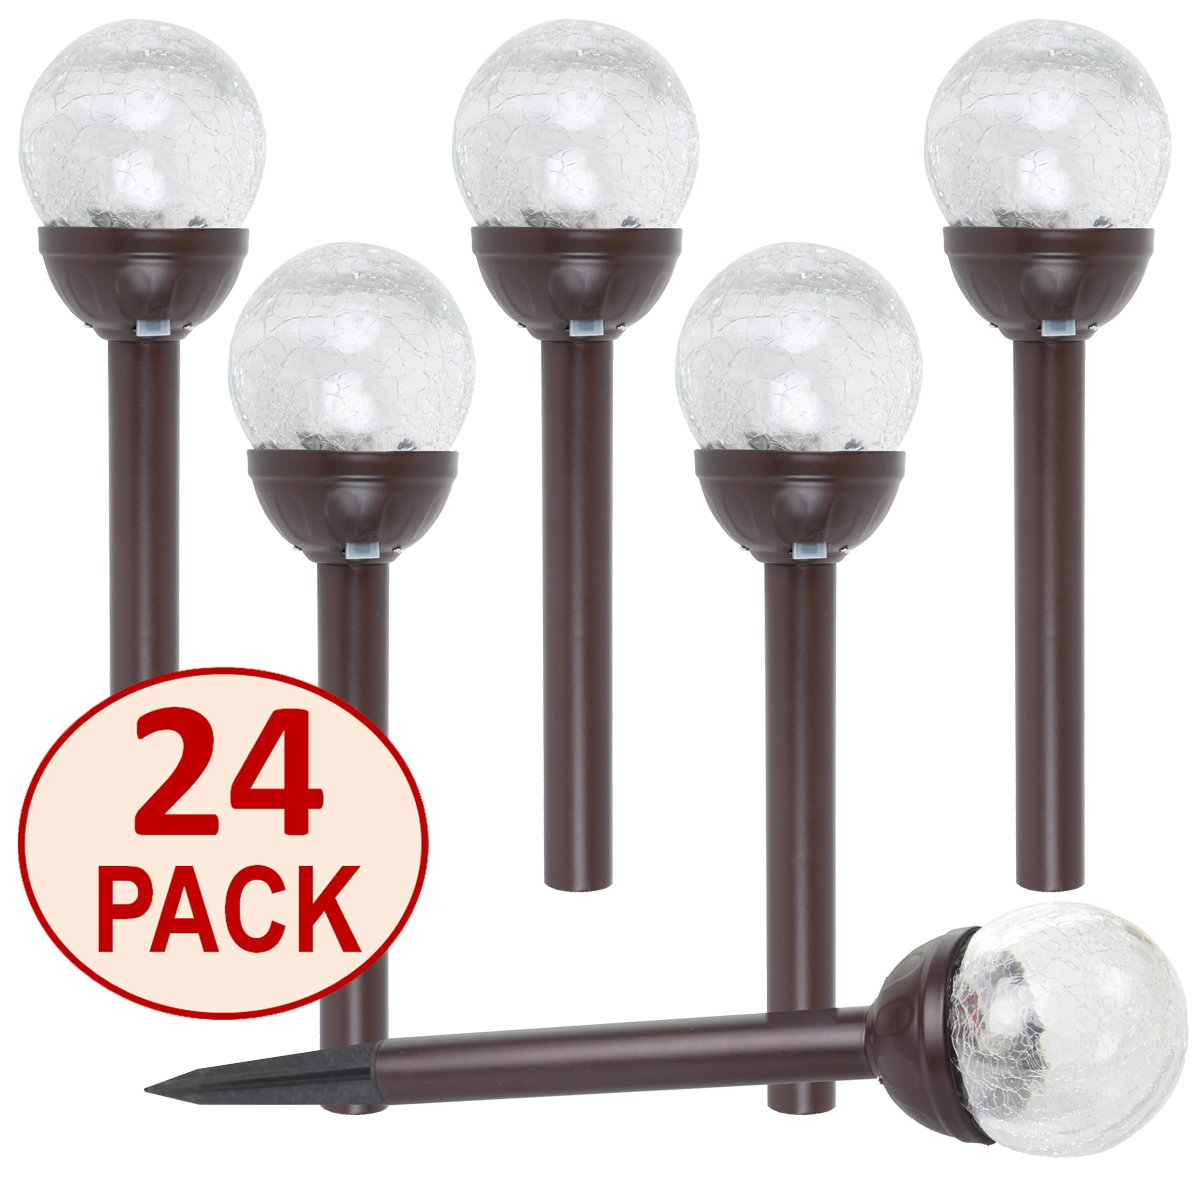 SET OF 24 Crackle Glass Globe Color-Changing LED & White LED Bronze Stainless Steel Solar Path Lights by SOLAscape